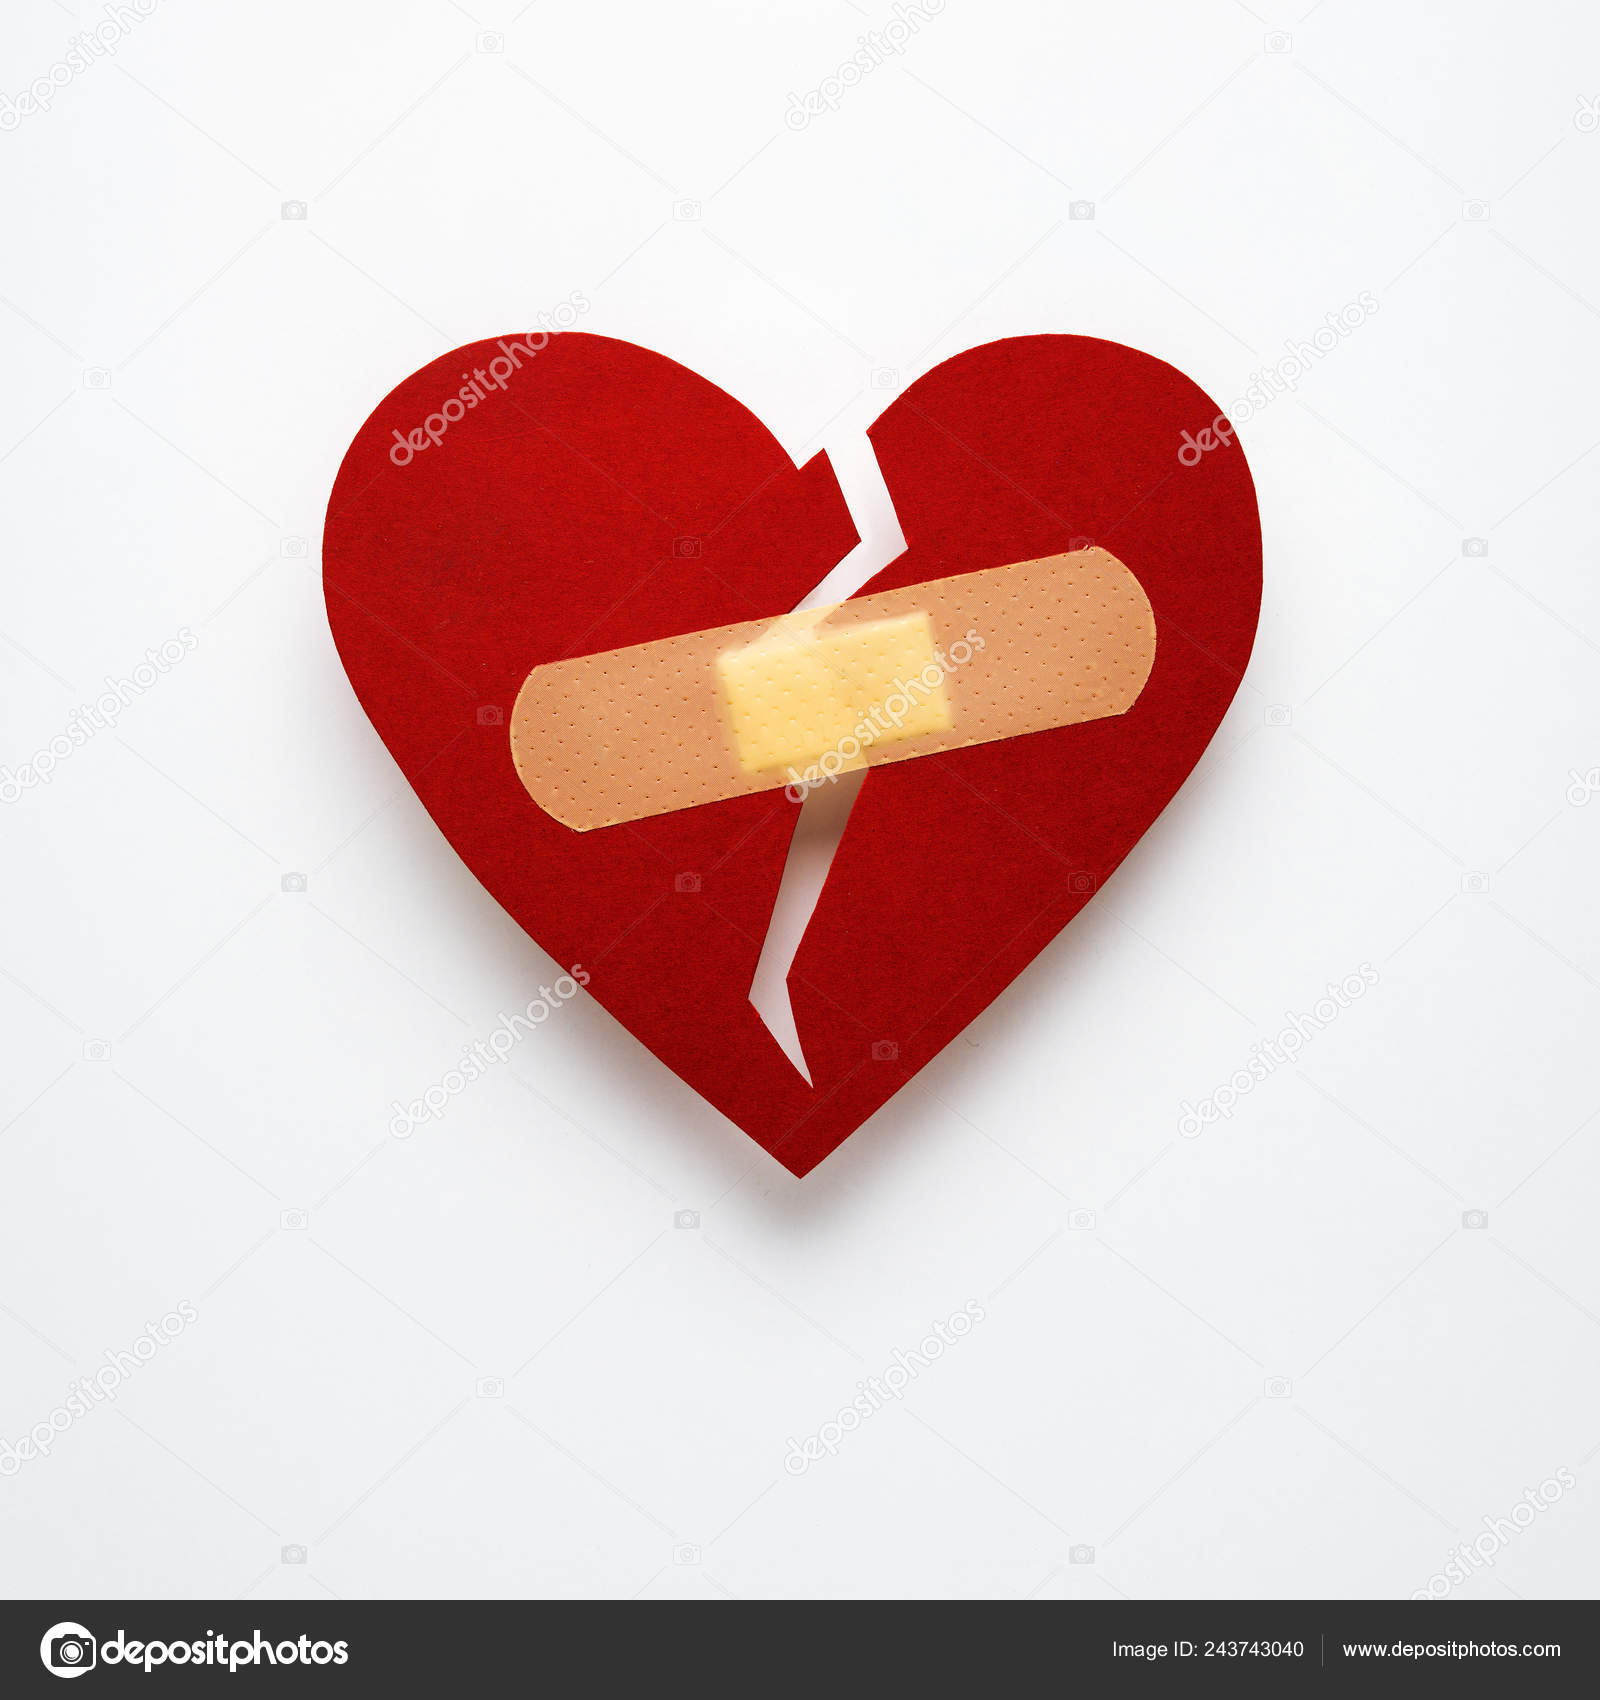 Pictures: broken heart with plaster image | Creative Concept